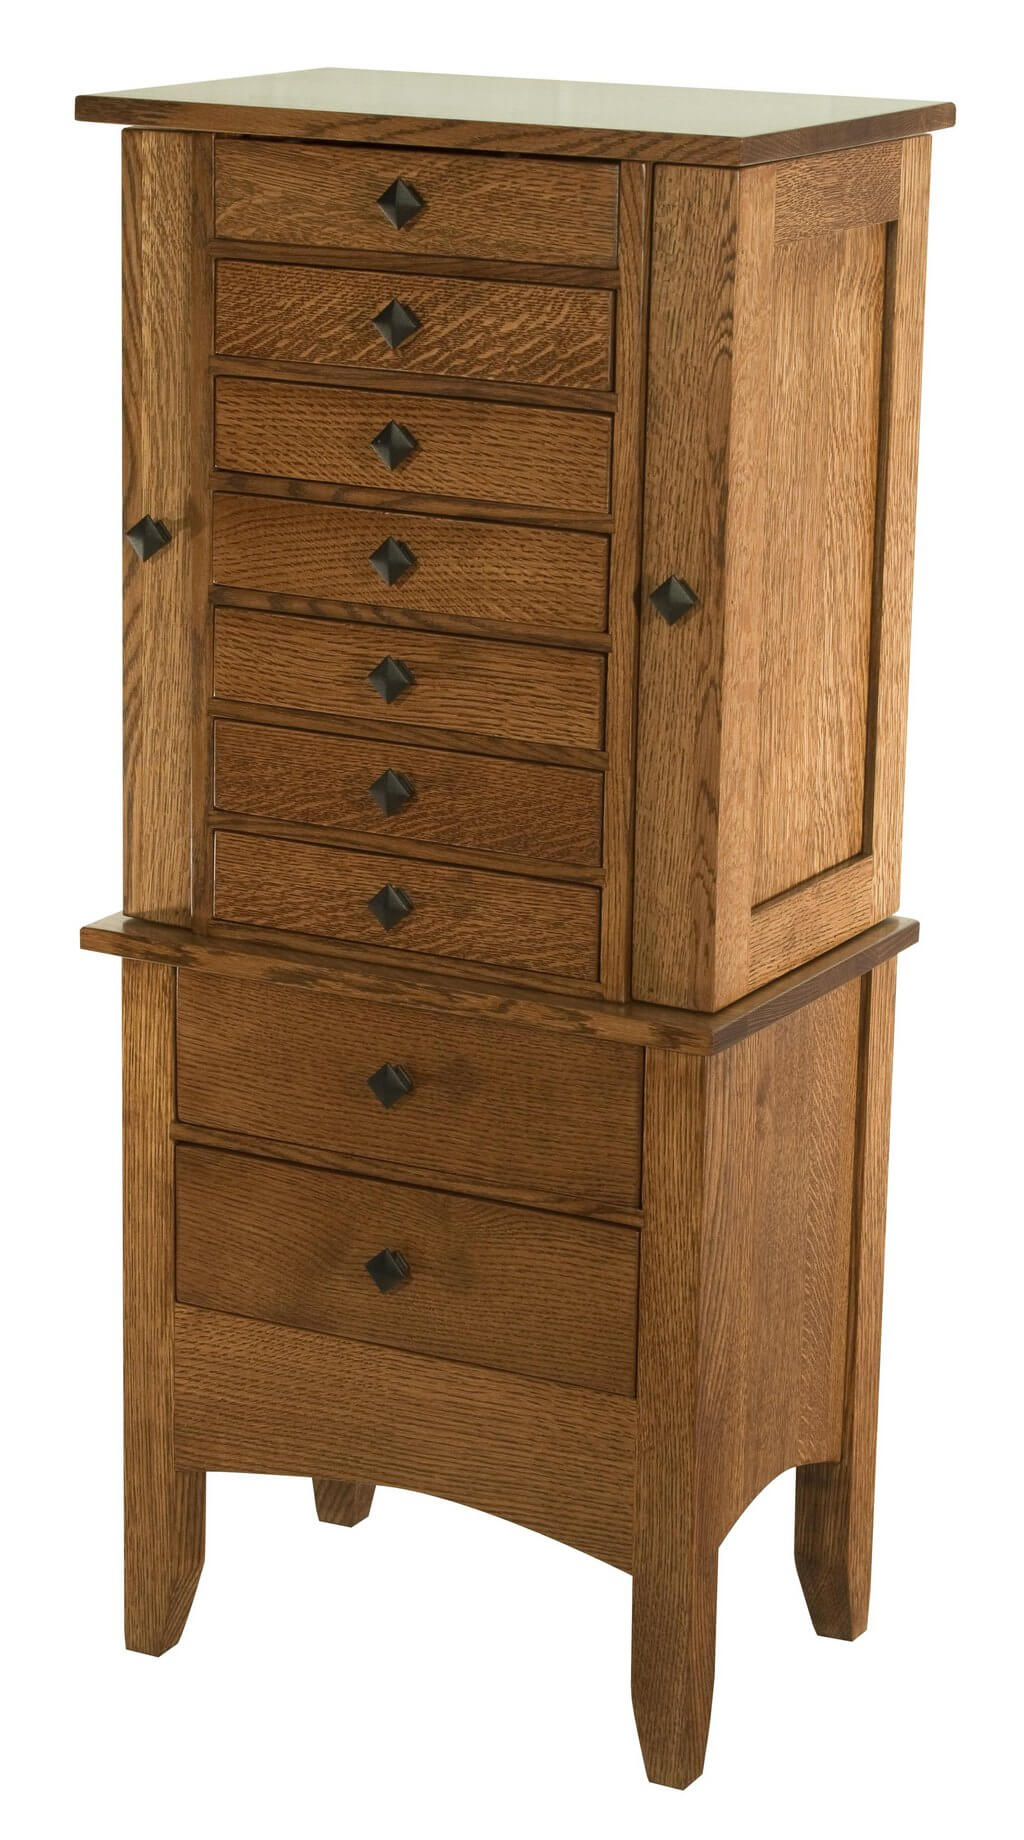 Jewelry Armoires - Bedroom Furniture | E-Town Amish Furniture